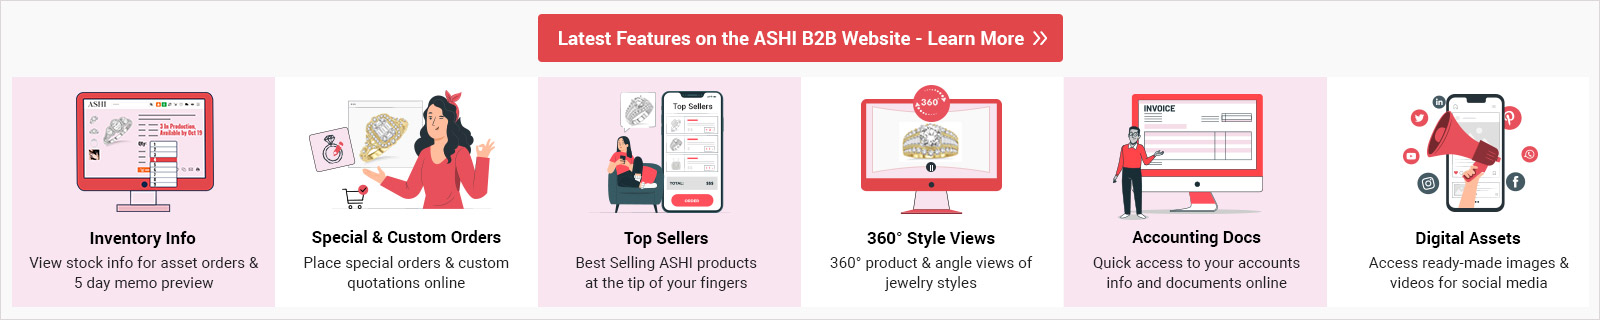 Latest Features on the ASHI B2B Website